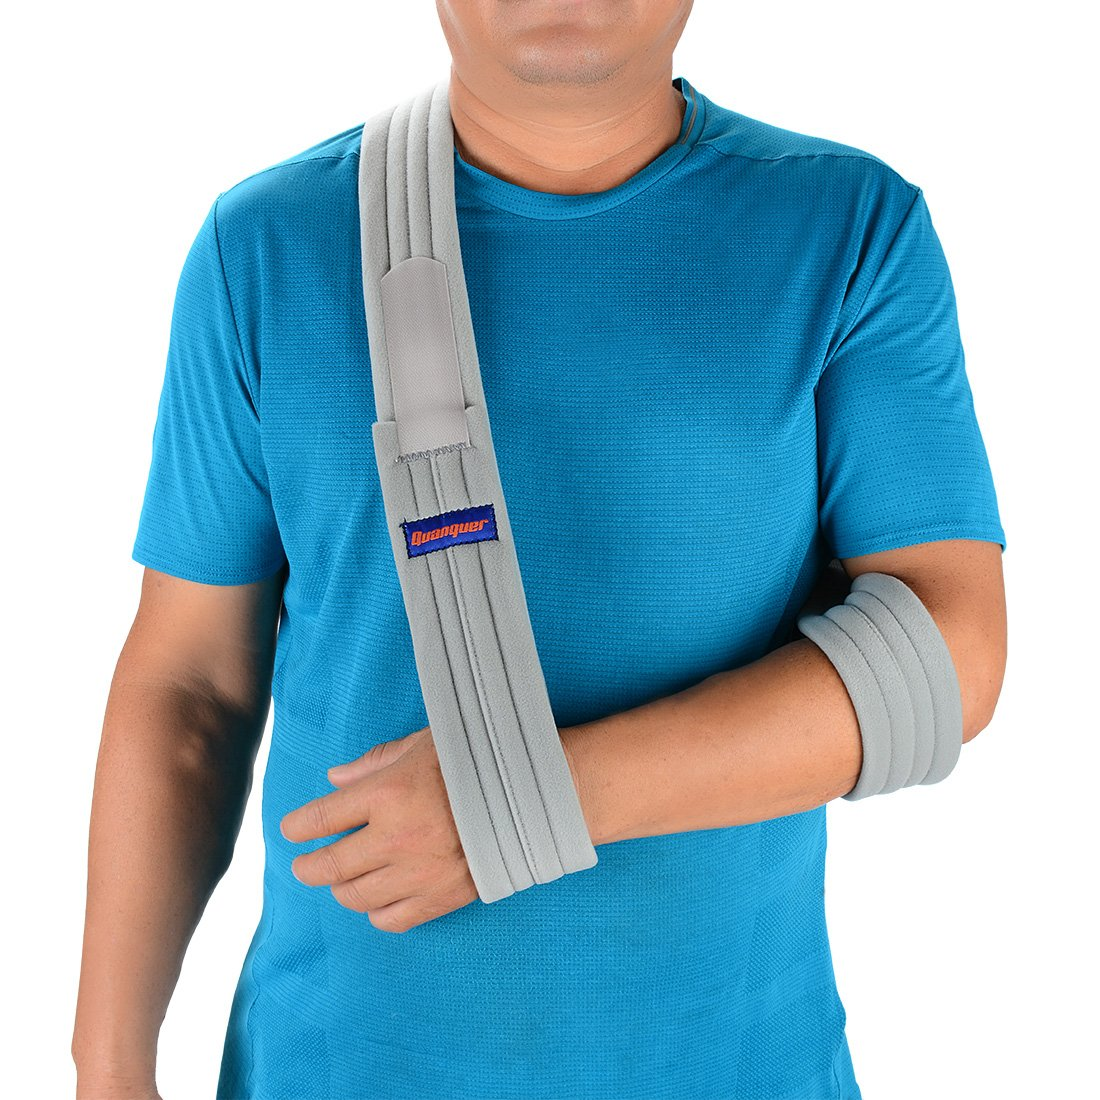 Arm Sling Shoulder Immobilizer- Adjustable Arm Support Strap for Broken Arm Immobilizer Wrist Elbow Support- Fits Both Adults and Youths (Simple/Lightweight/Comfortable)